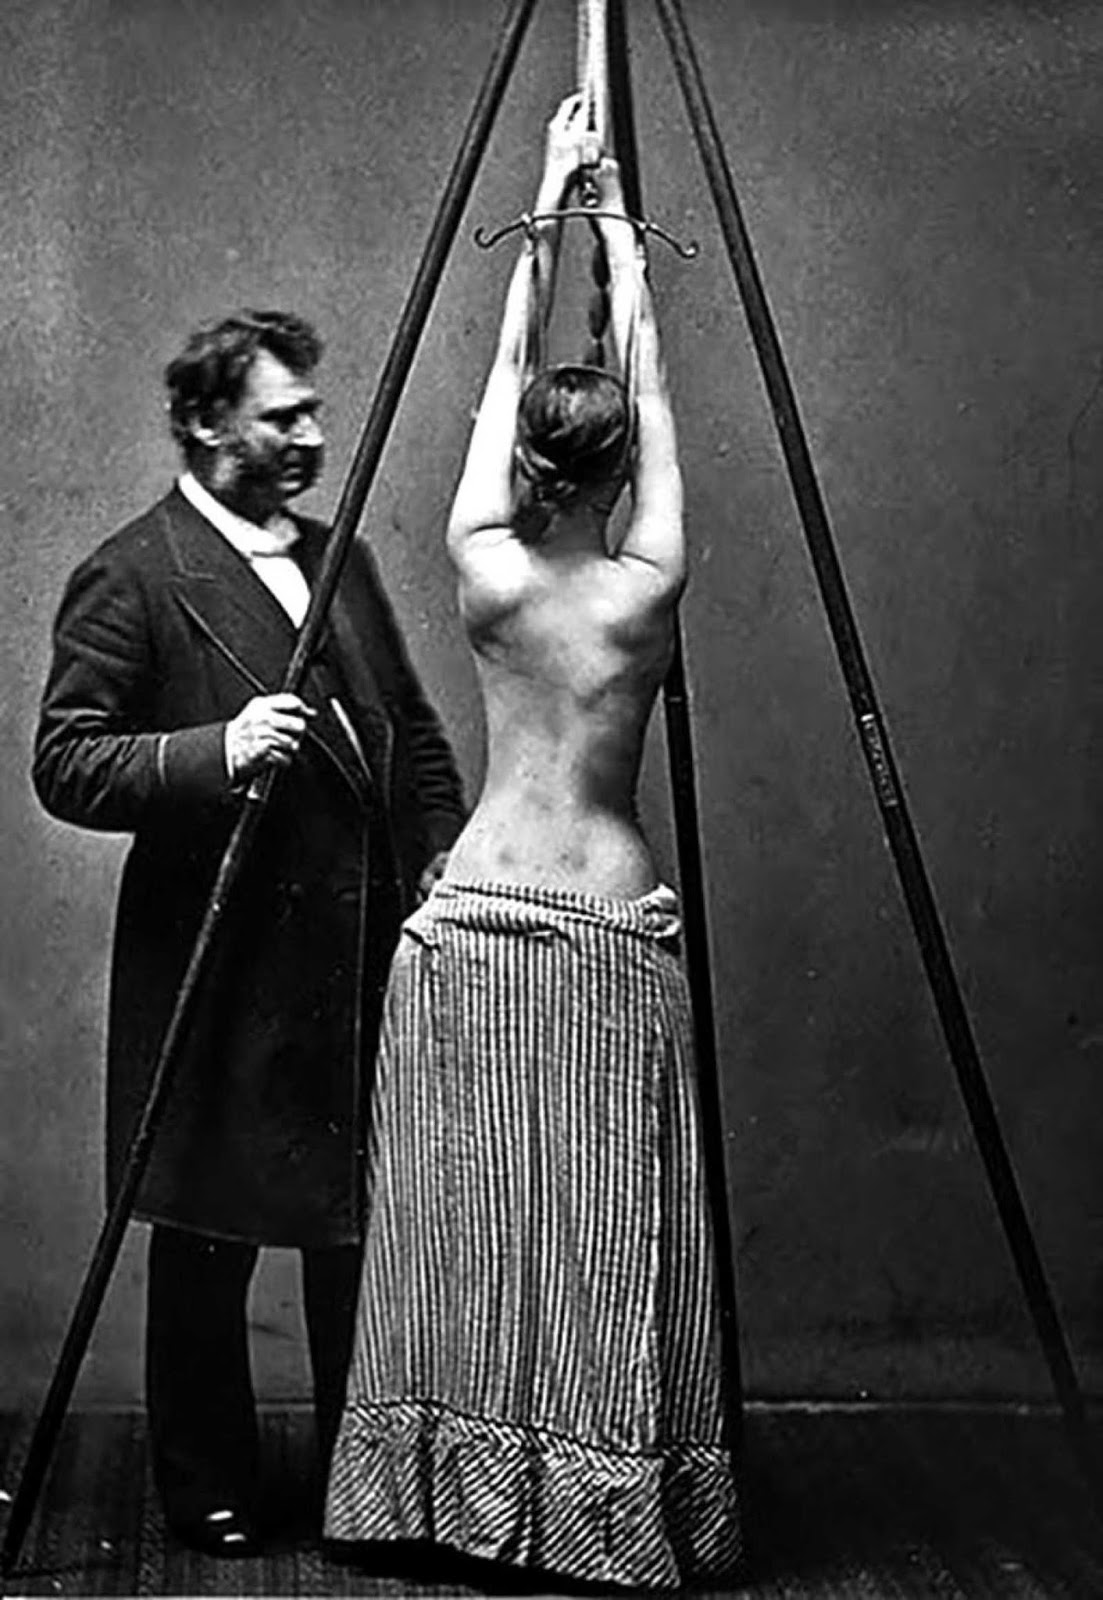 Dr. Lewis Albert Sayre observes the change in the curvature of the spine as a patient self-suspends herself prior to being wrapped in a plaster of Paris bandage as part of her scoliosis treatment circa 1850-1900.